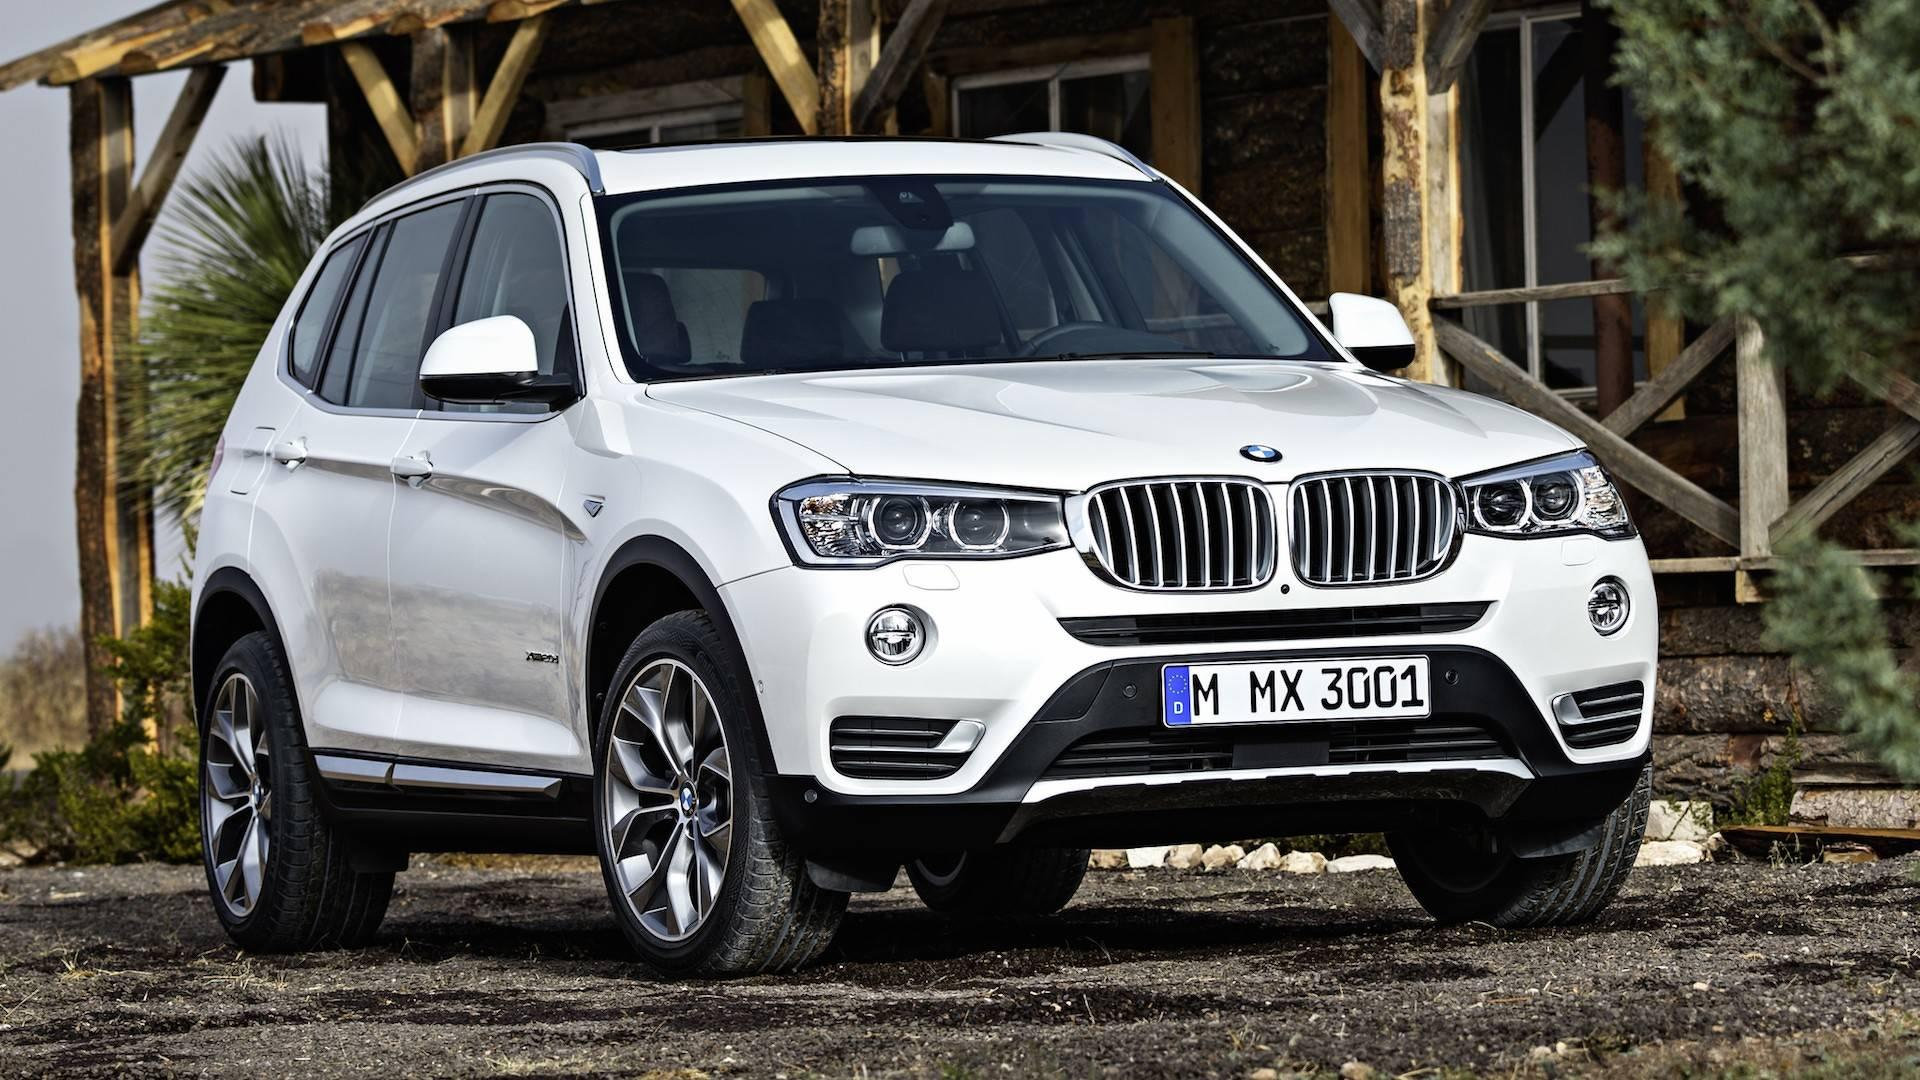 """<p>While it only gets average marks for overall dependability from JD Power, the compact and decidedly sporty <a href=""""https://www.motor1.com/bmw/x3/"""" rel=""""nofollow noopener"""" target=""""_blank"""" data-ylk=""""slk:BMW X3"""" class=""""link rapid-noclick-resp"""">BMW X3</a> crossover SUV is the only model in its class to get a perfect grade for powertrain performance; survey respondents marked it off for body and interior dependability, however. Meanwhile, <em>Consumer Reports</em> rates the 2014 vintage as above average for reliability, giving it somewhat lower scores for in-car electronics and climate control; it also gives the 2017 edition a recommended rating.</p>"""